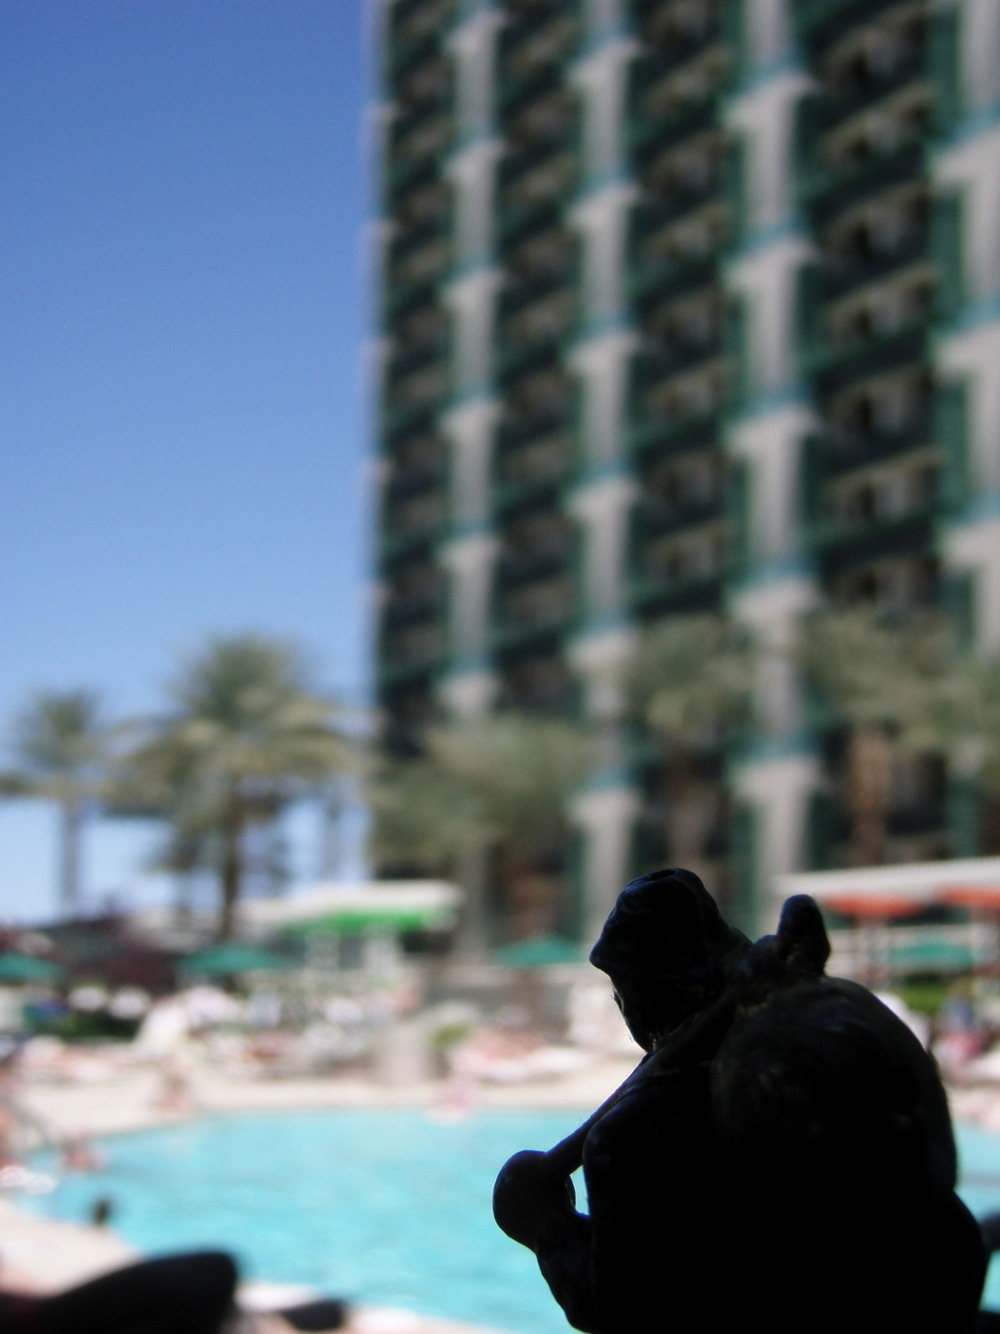 there are a lot of pools here…in the desert